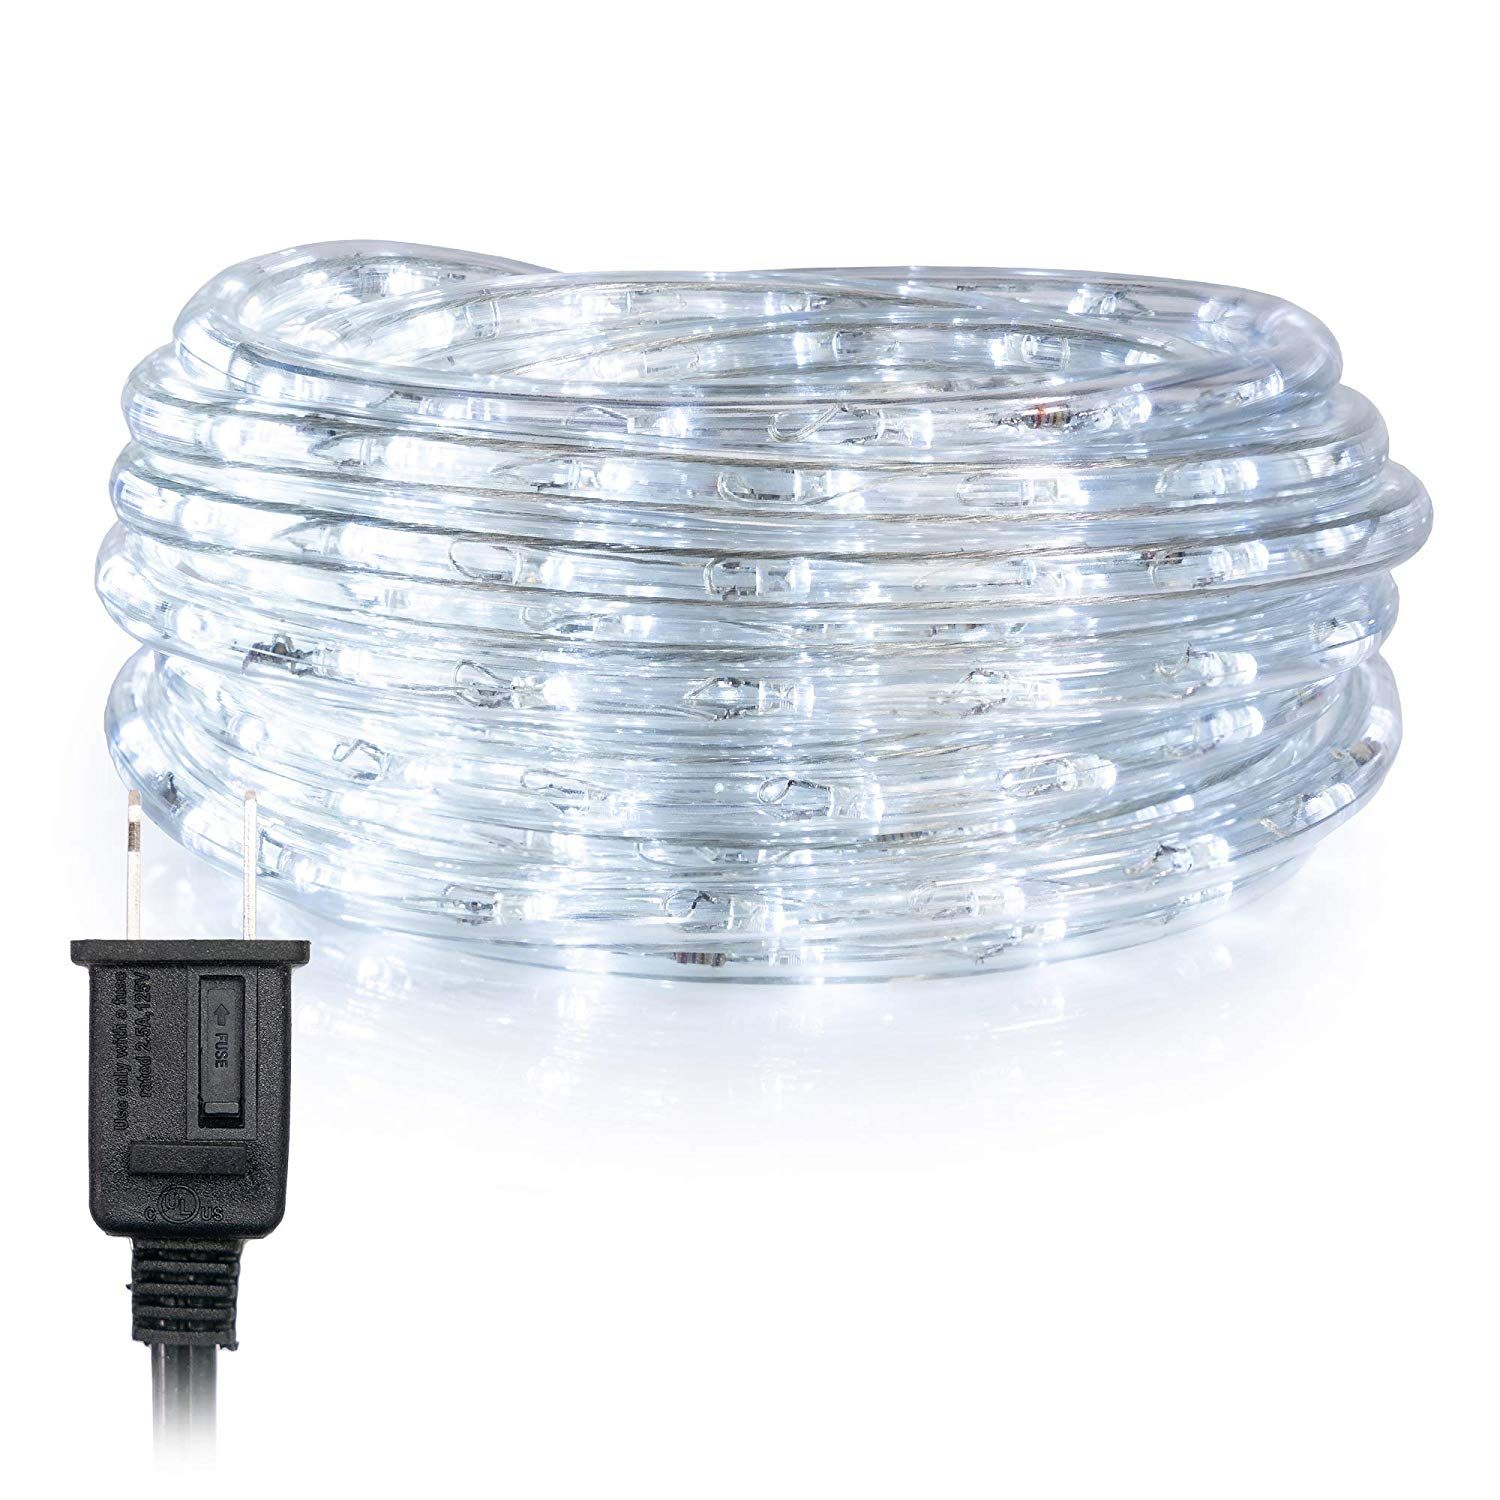 Wyzworks 100 Feet Cool White 3 8 Led Rope Lights Ul And Etl Certified Ip65 Water Resistant Fl Indoor Outdoor Lighting Outdoor Lighting Diy Outdoor Lighting